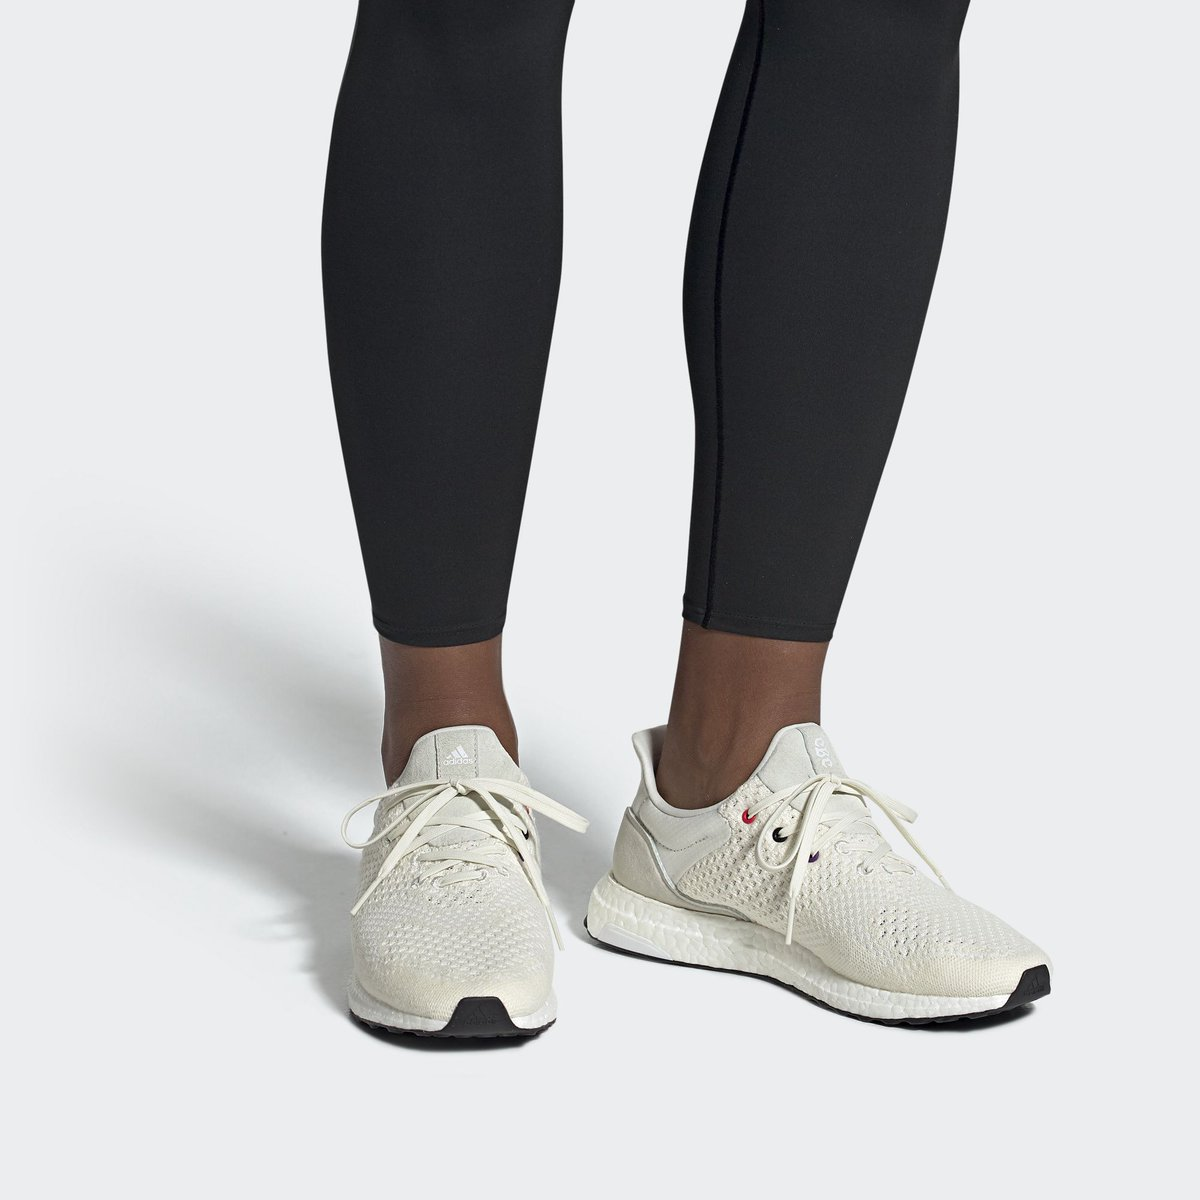 """294df9b3bfe Official adidas images of the cancelled """"Celebrating Black Culture"""" Ultra  Boost Uncaged"""